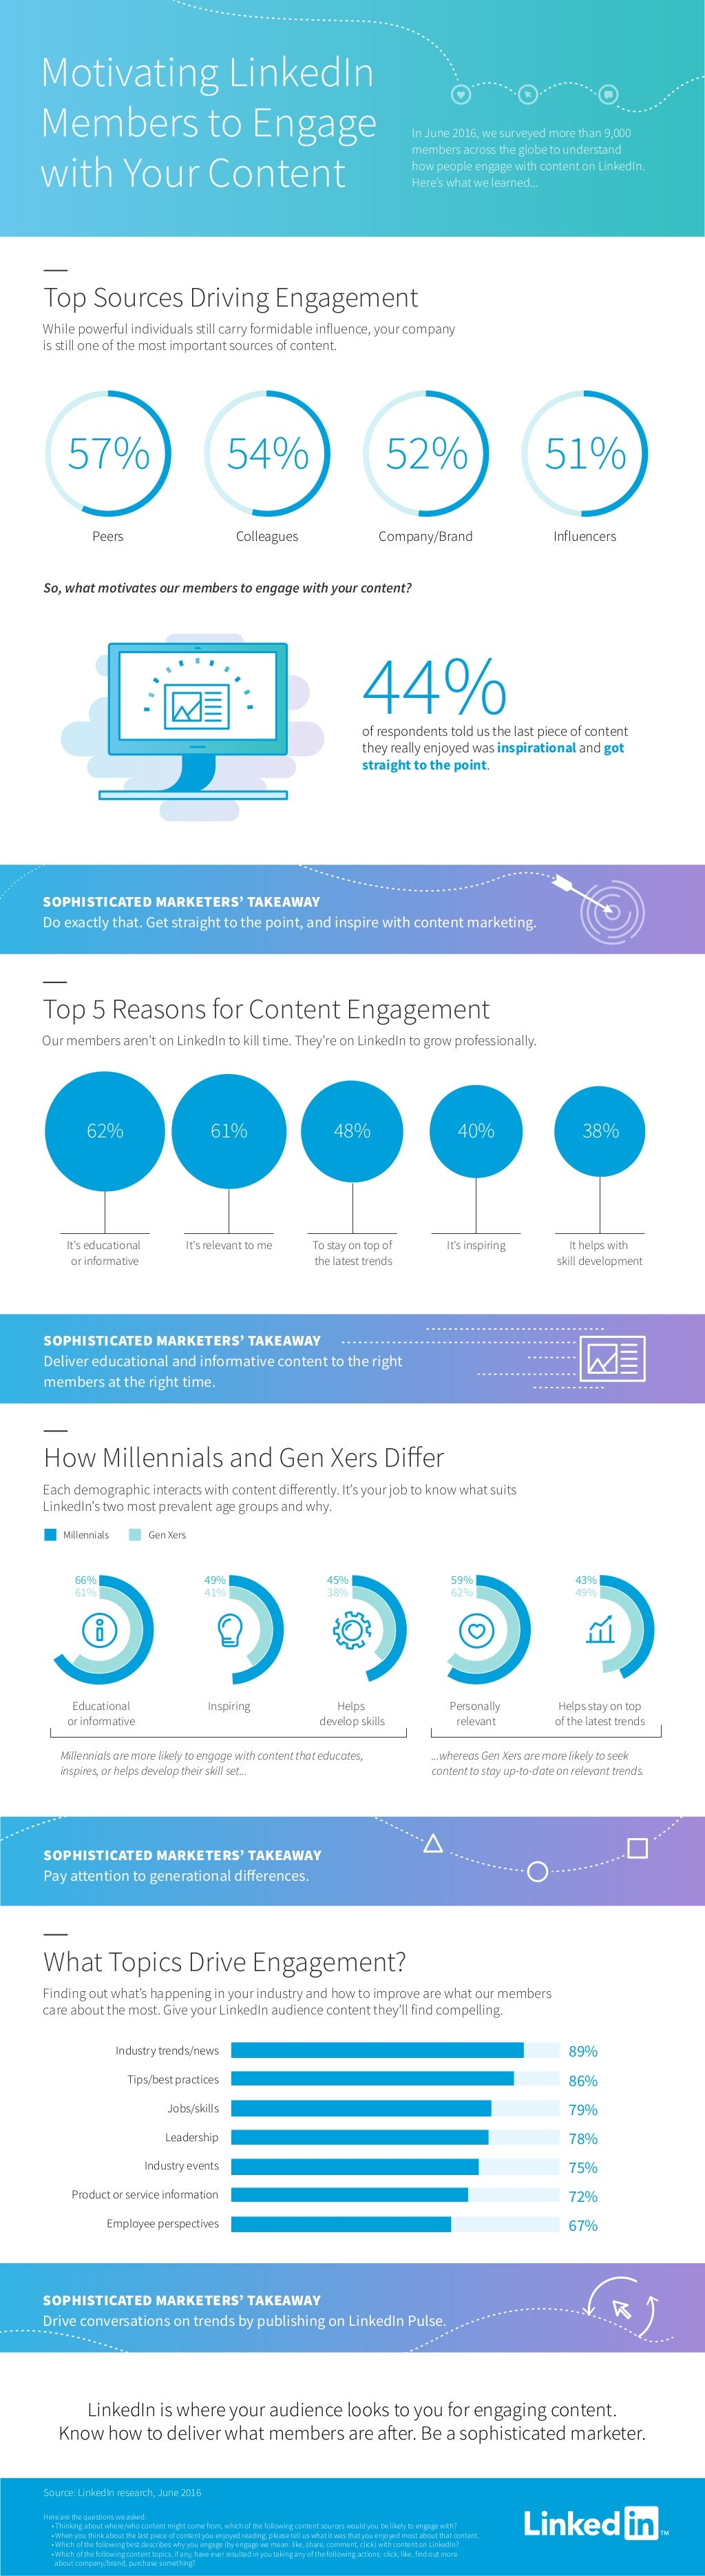 Infographic: Motivating LinkedIn Members to Engage with Your Content